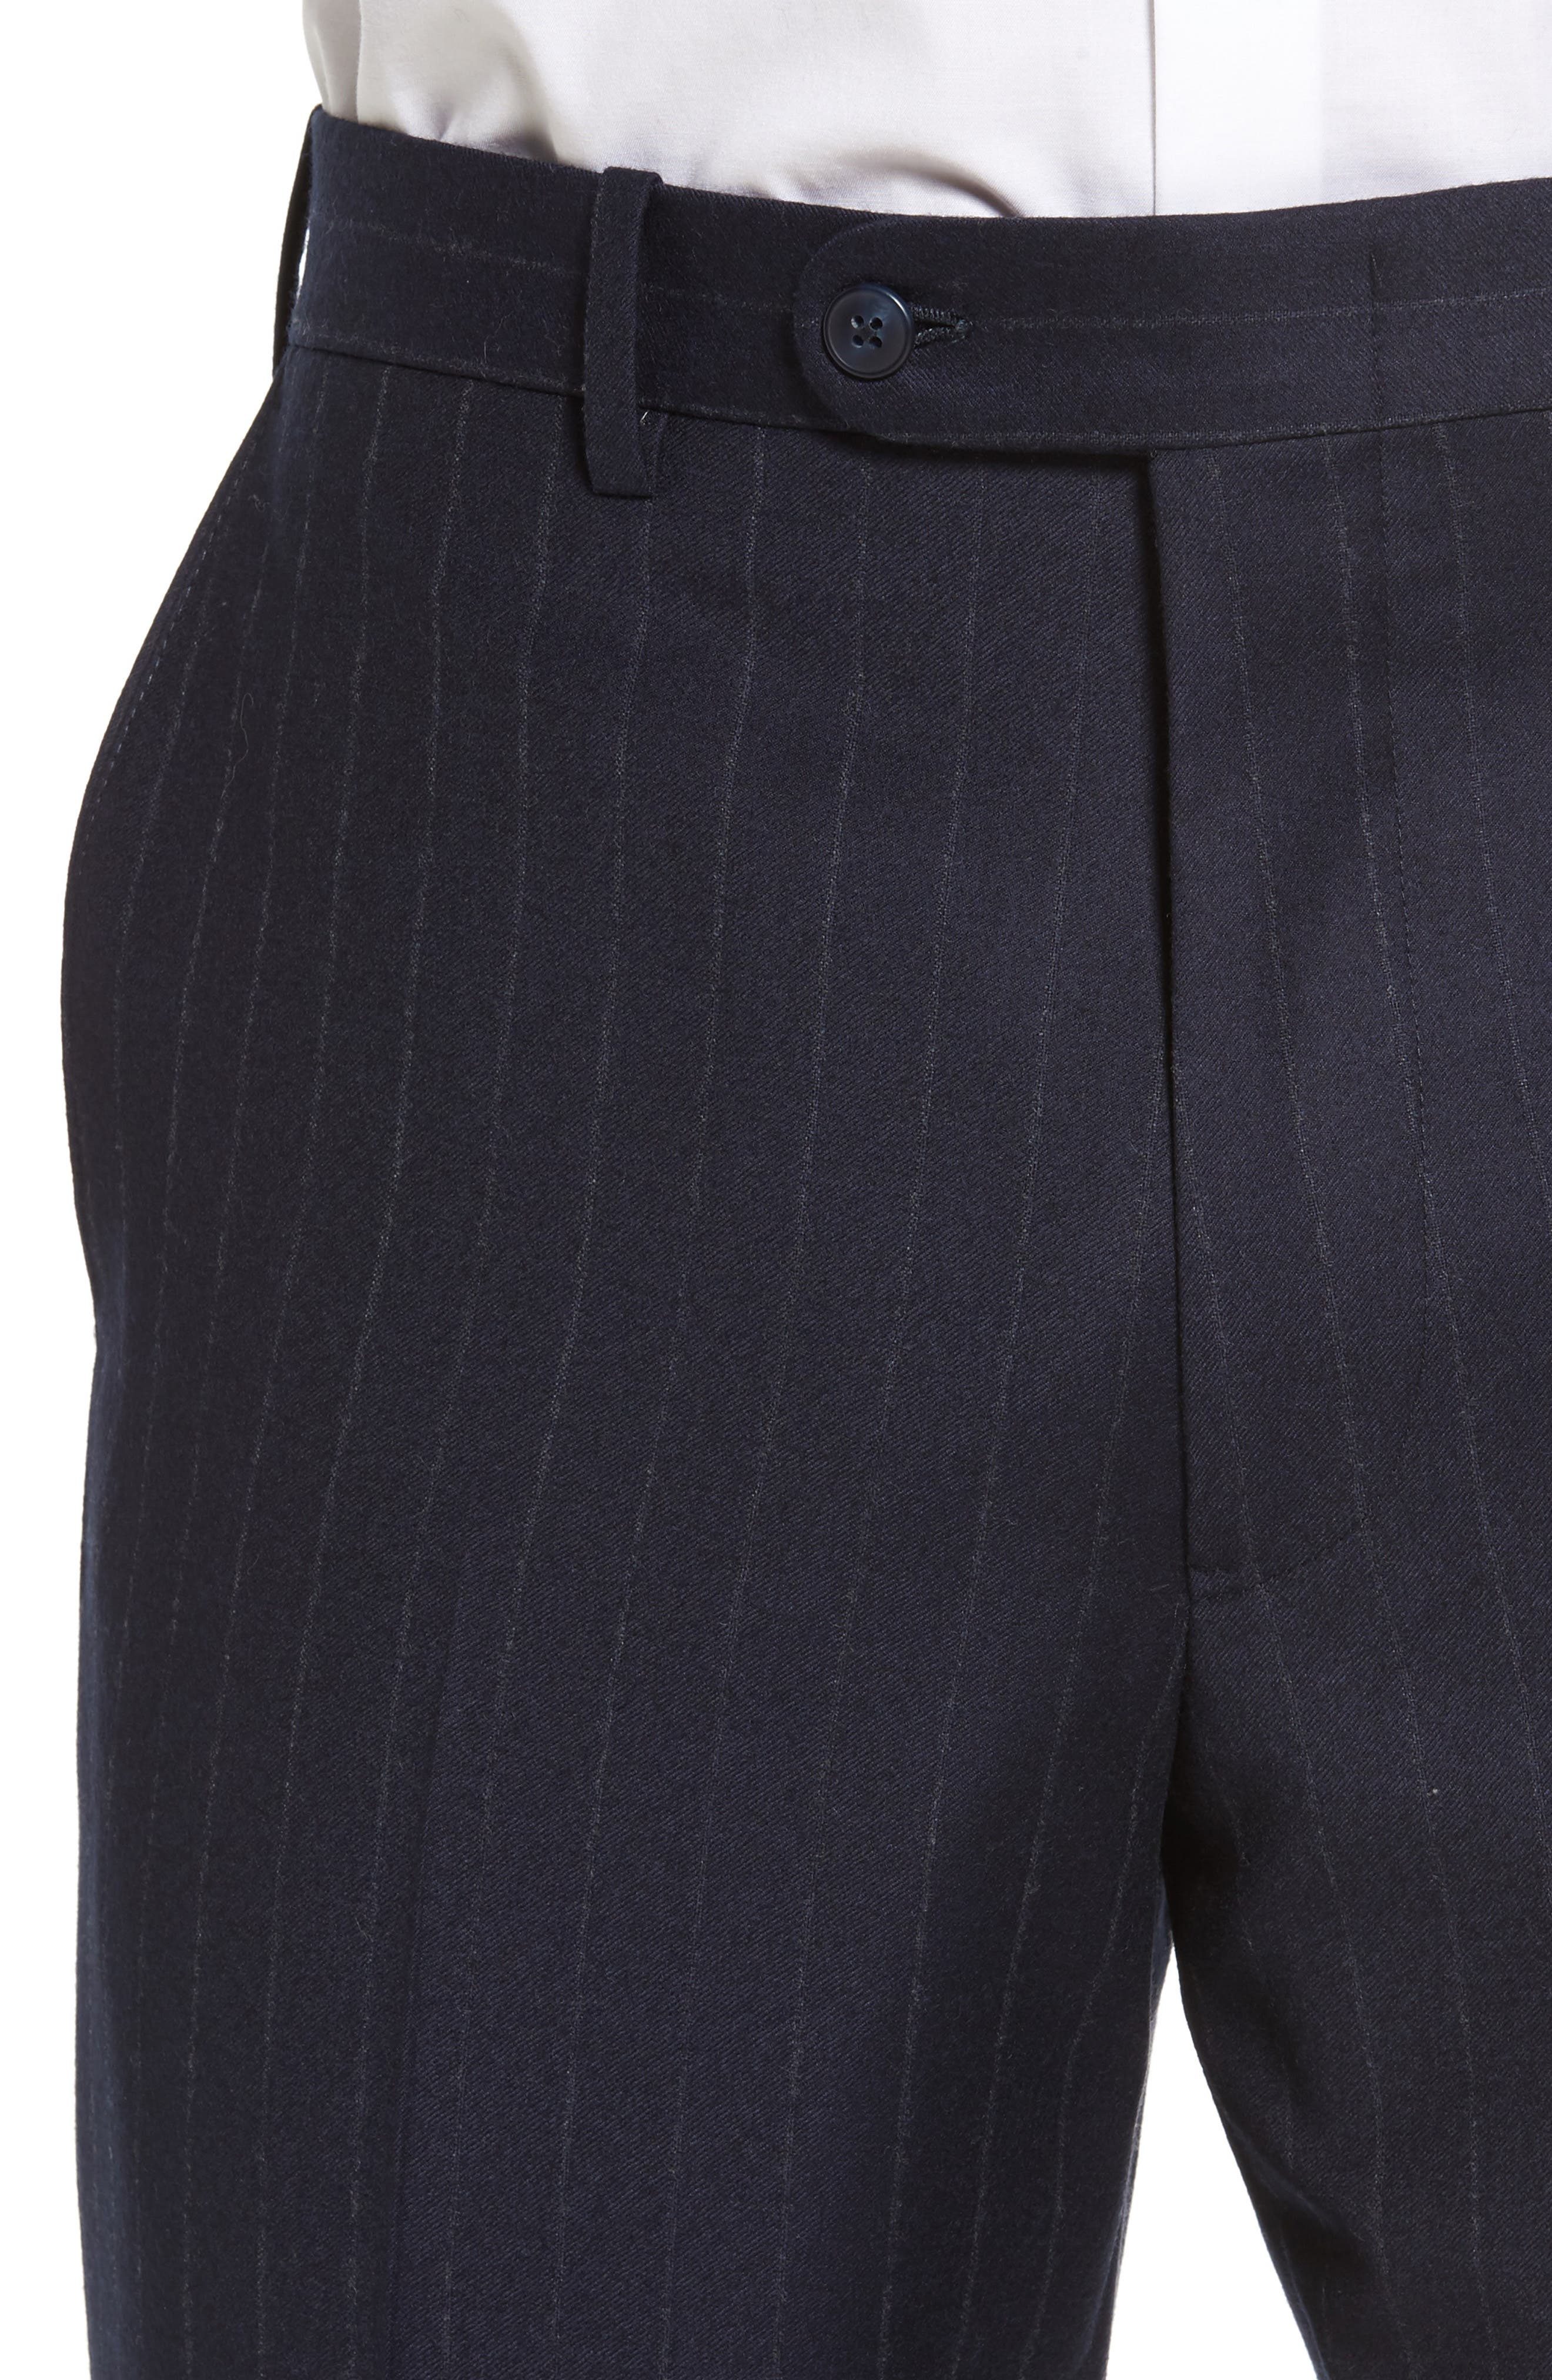 Flat Front Chalk Stripe Wool Trousers,                             Alternate thumbnail 4, color,                             Navy